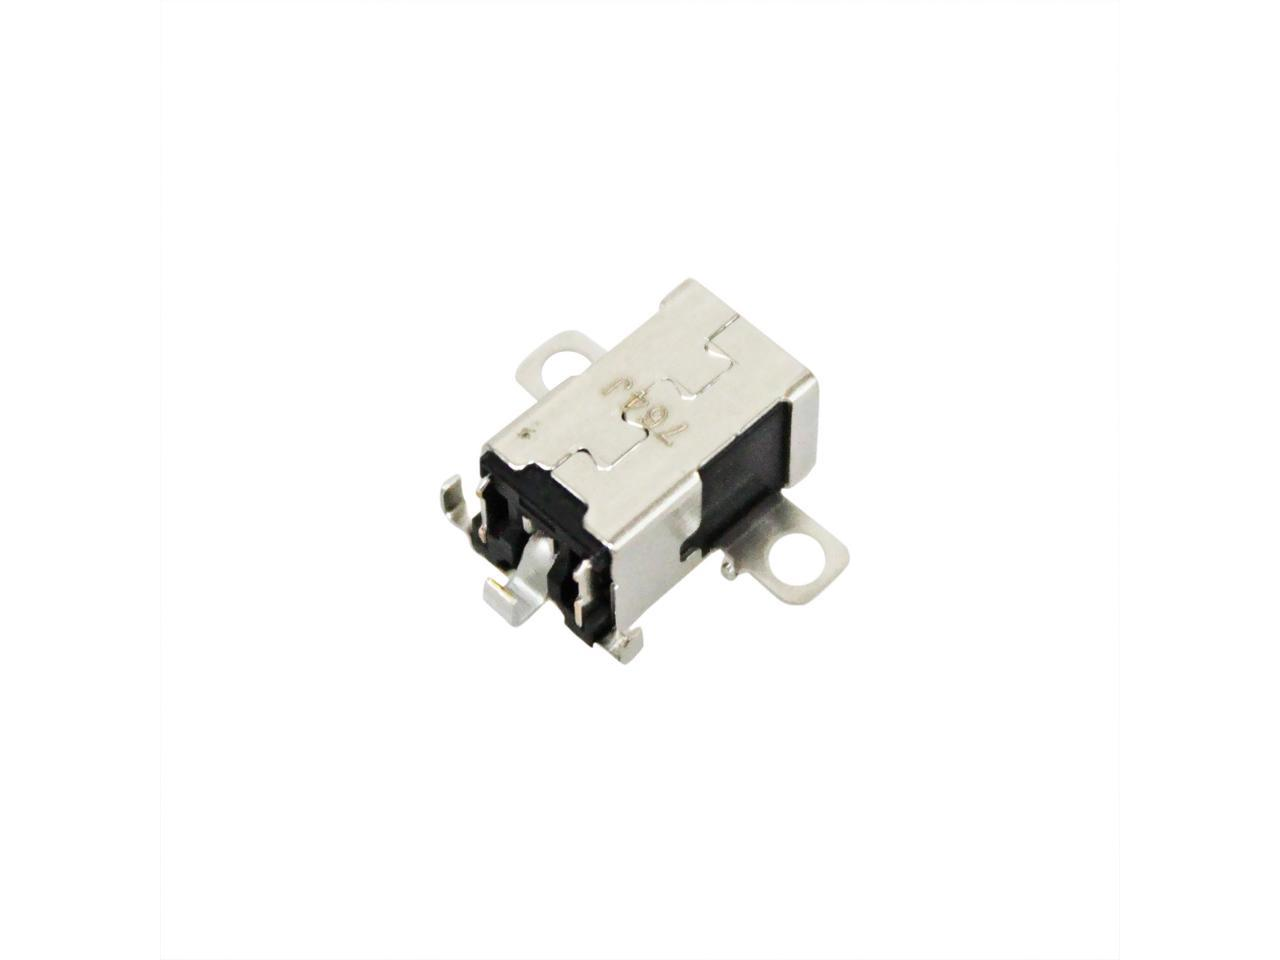 AC DC Power Socket Charging Port Compatible for Lenovo Ideapad 110 Touch-15ACL 110-15ACL 110-15AST 110-15ISK 510-15IKB 310-15ABR 310-15IAP 310-15IKB 310-15ISK 110-15IBR 110-17IKB 80VK 110-17ACL